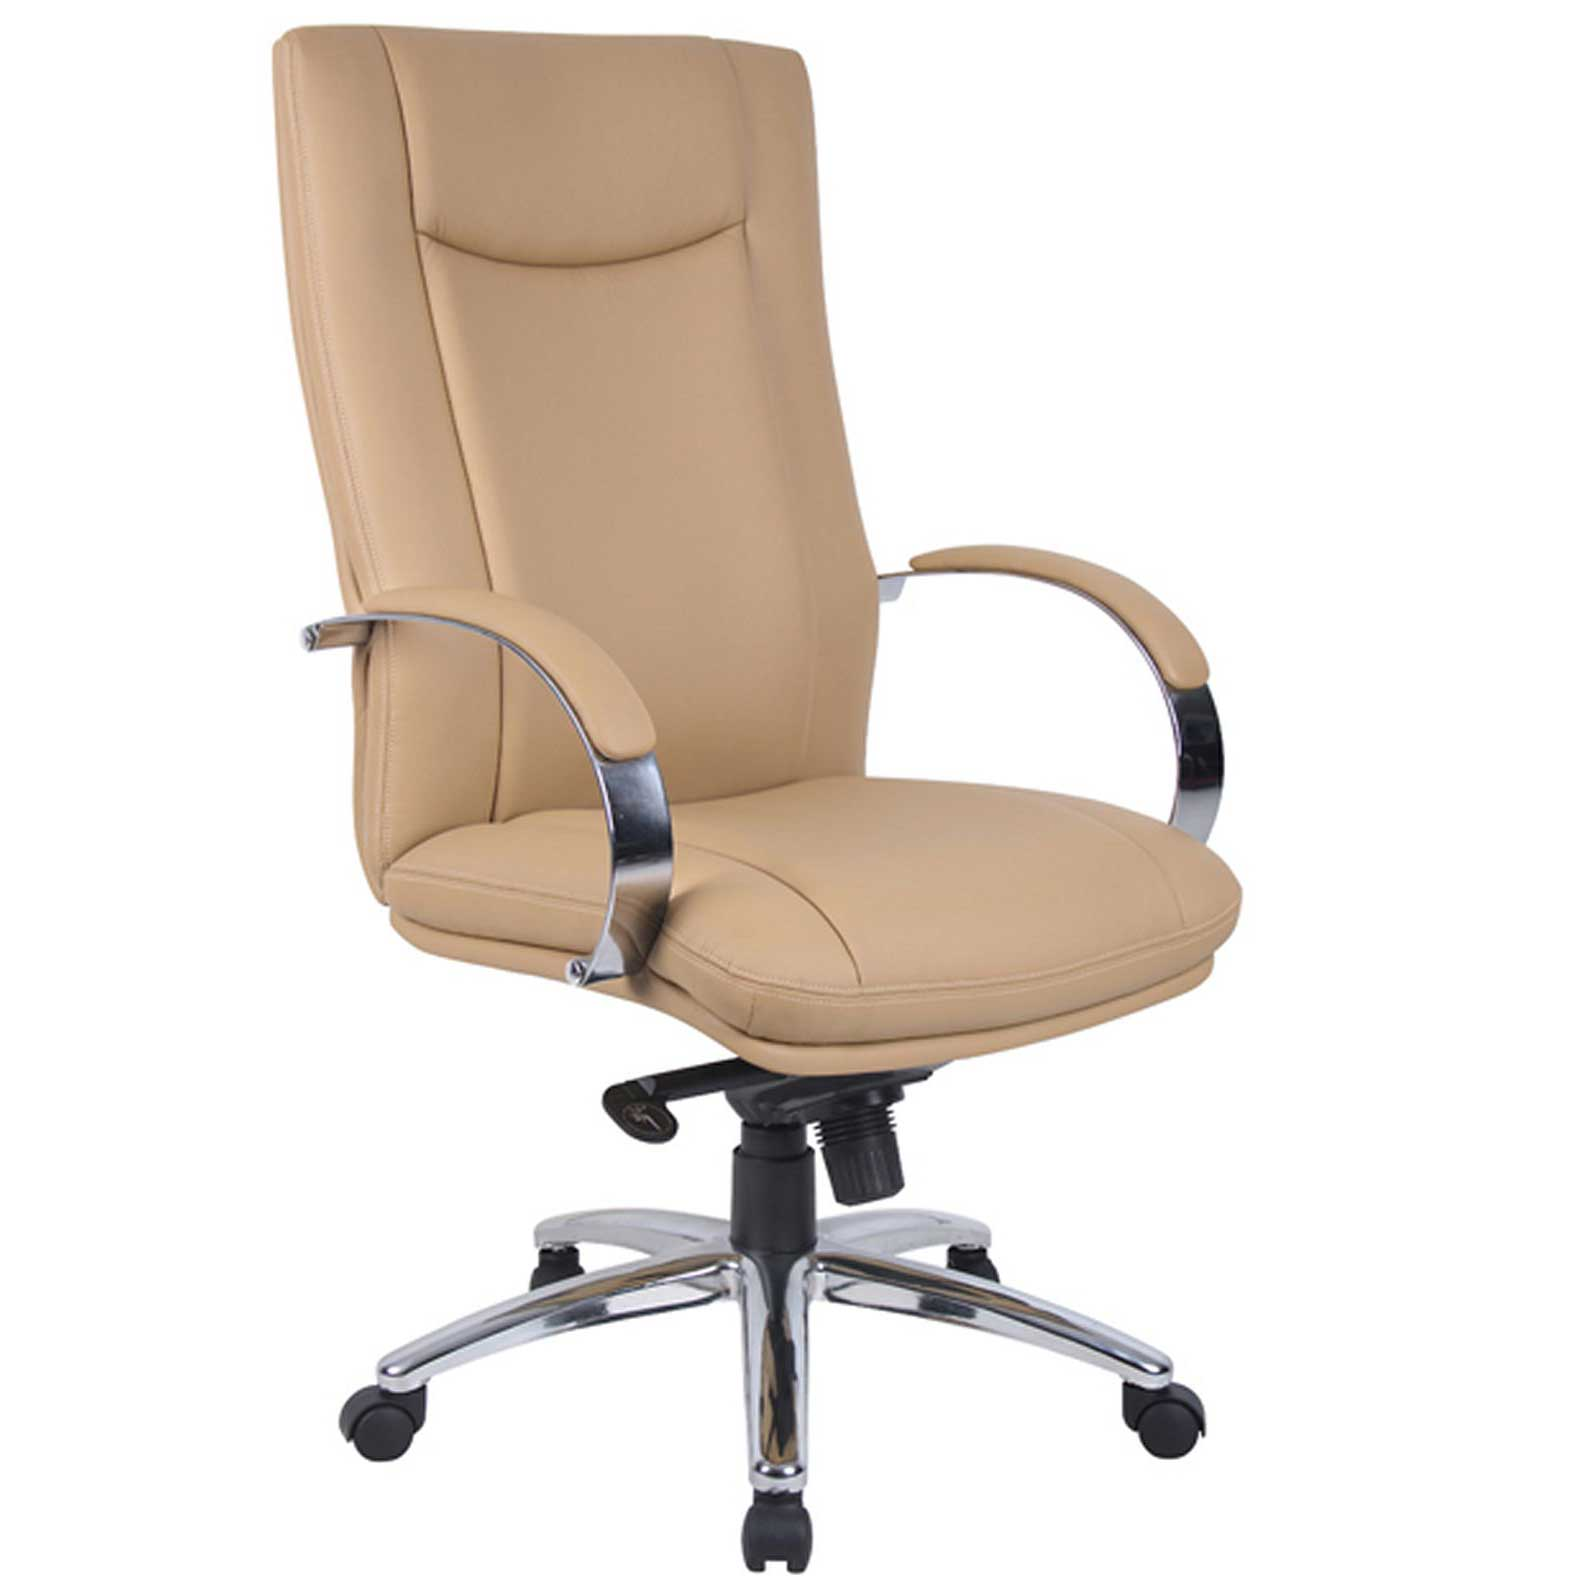 High Back Executive Leather Chair with Arms